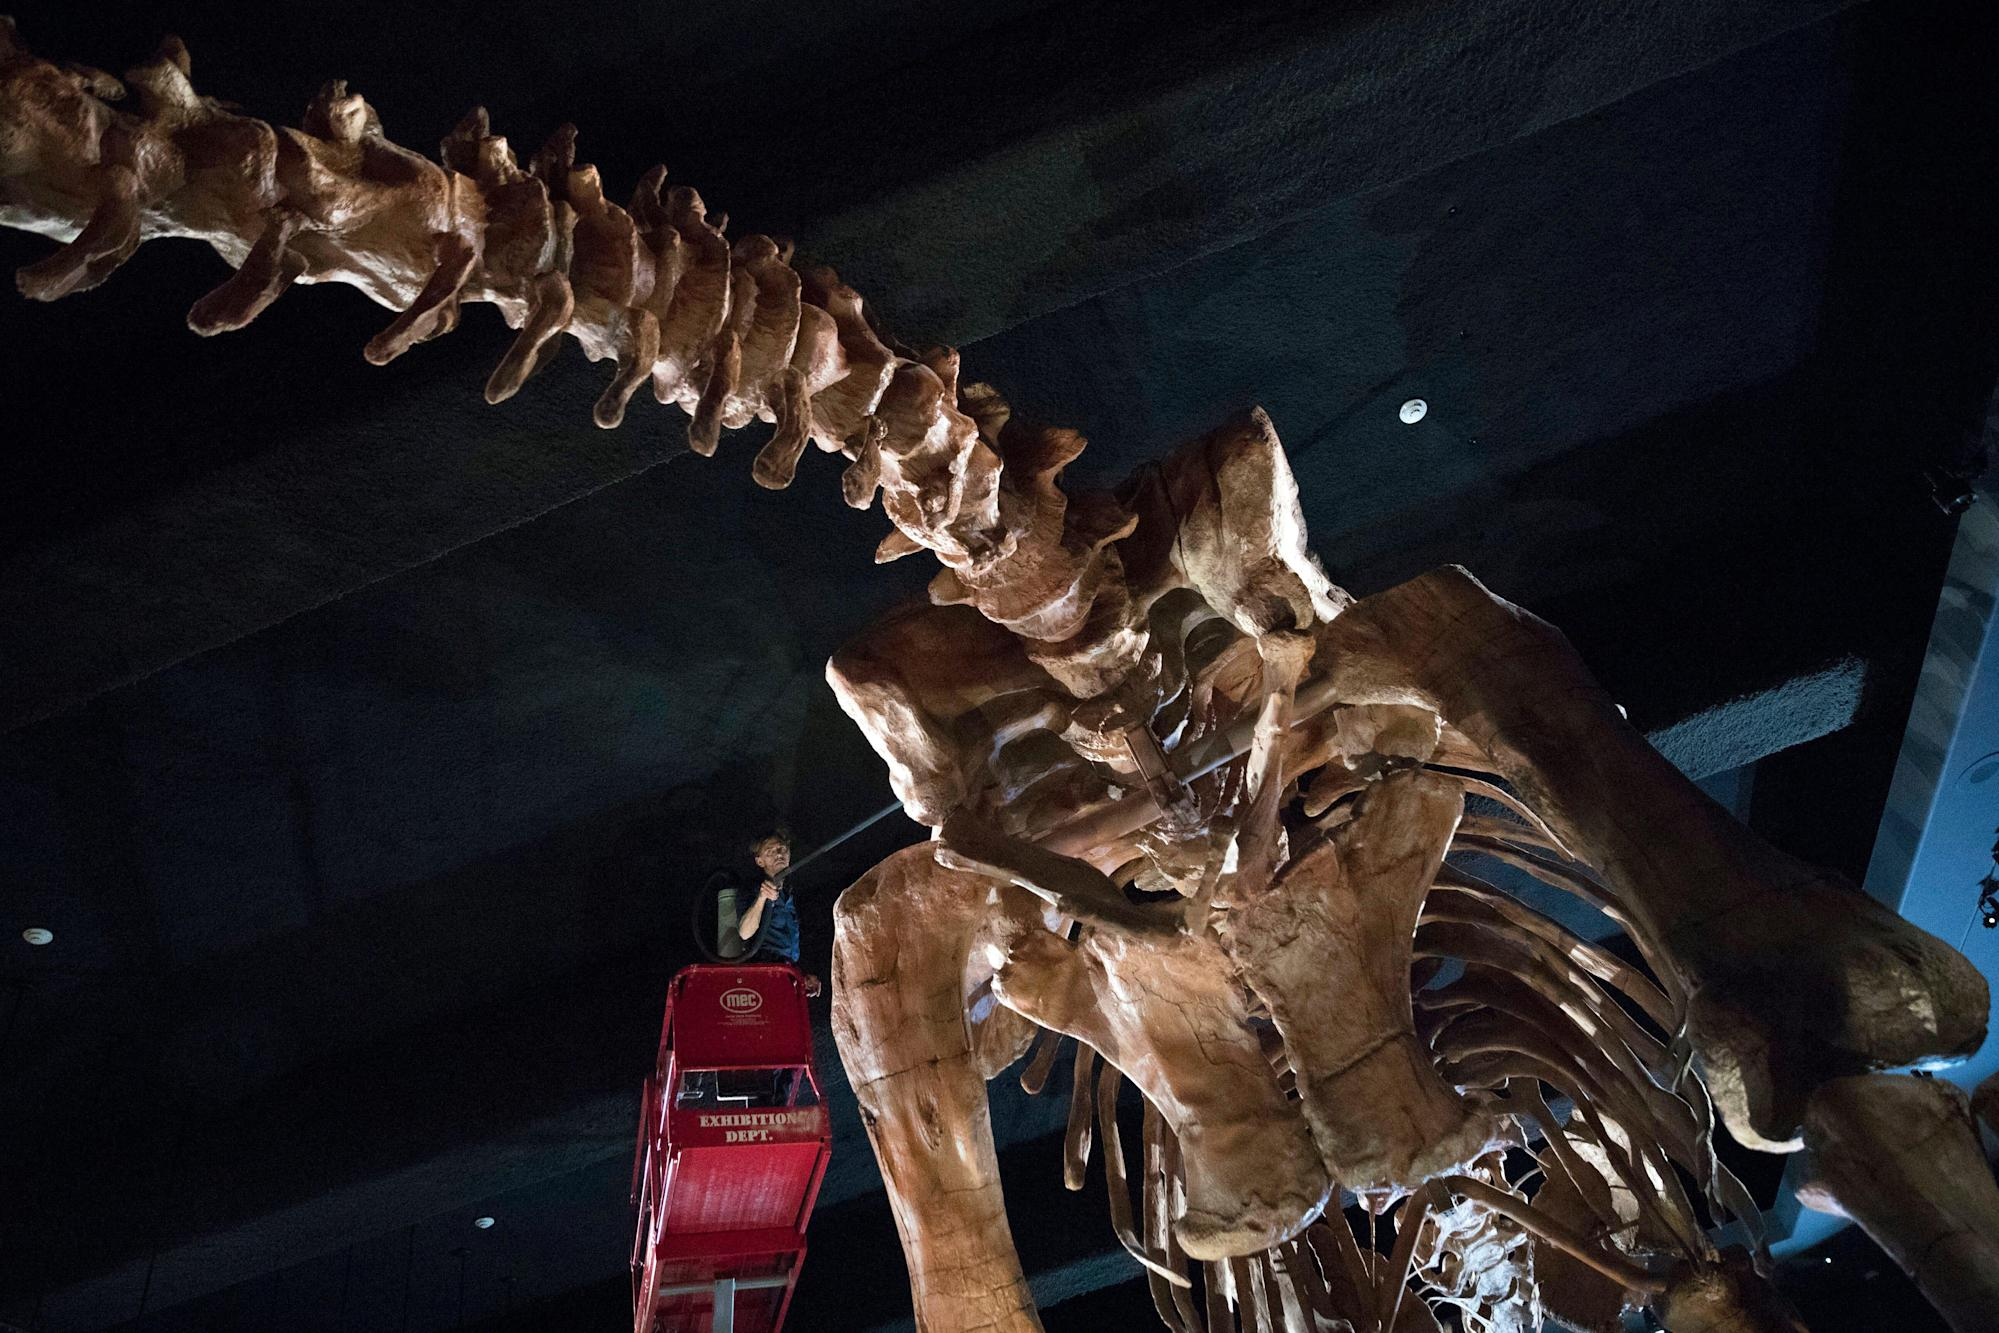 Twice the size of the Hollywood sign: One of the largest dinosaur species in the world discovered in Australia – Yahoo News